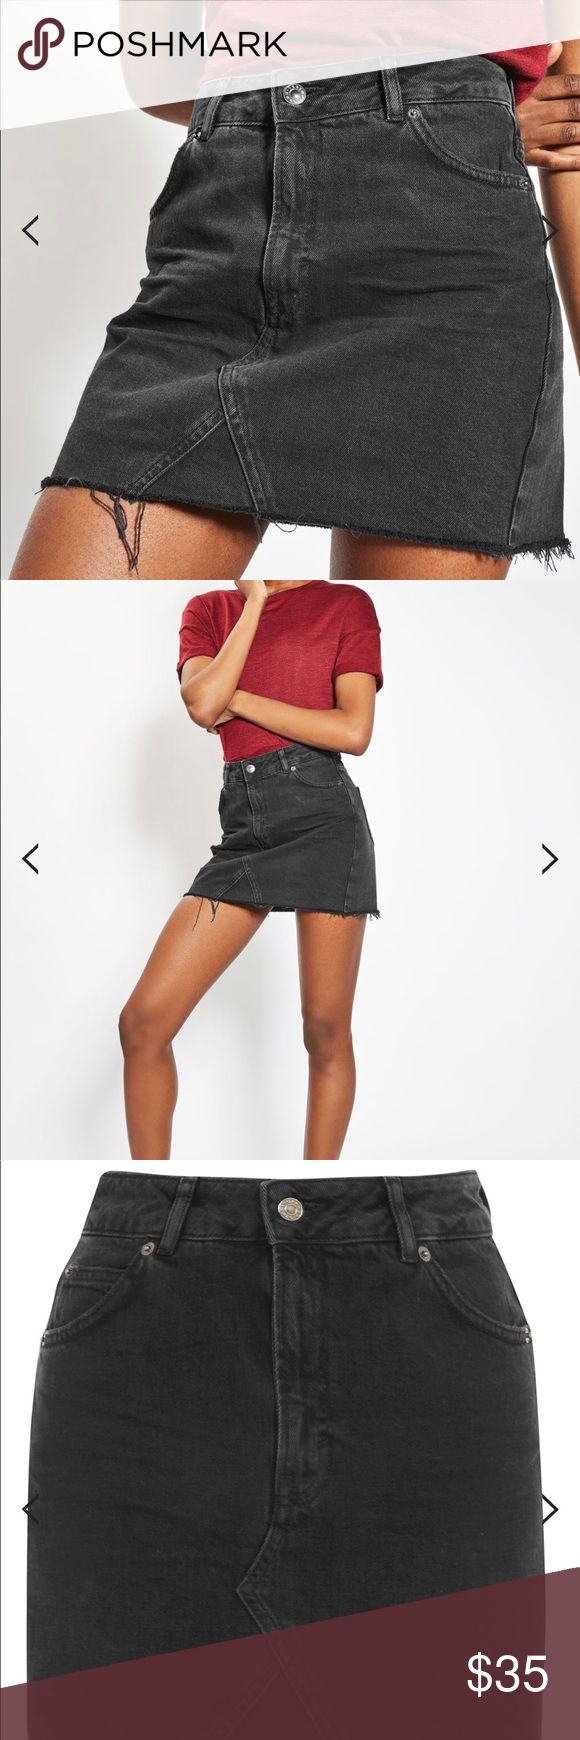 Topshop Moto Mini Denim Skirt Invest in a spring/summer staple with this denim mini skirt in washed black. We love the raw hem finish for an edgy touch. 100% Cotton. Machine wash. Colour: Washed Black Topshop Skirts Mini